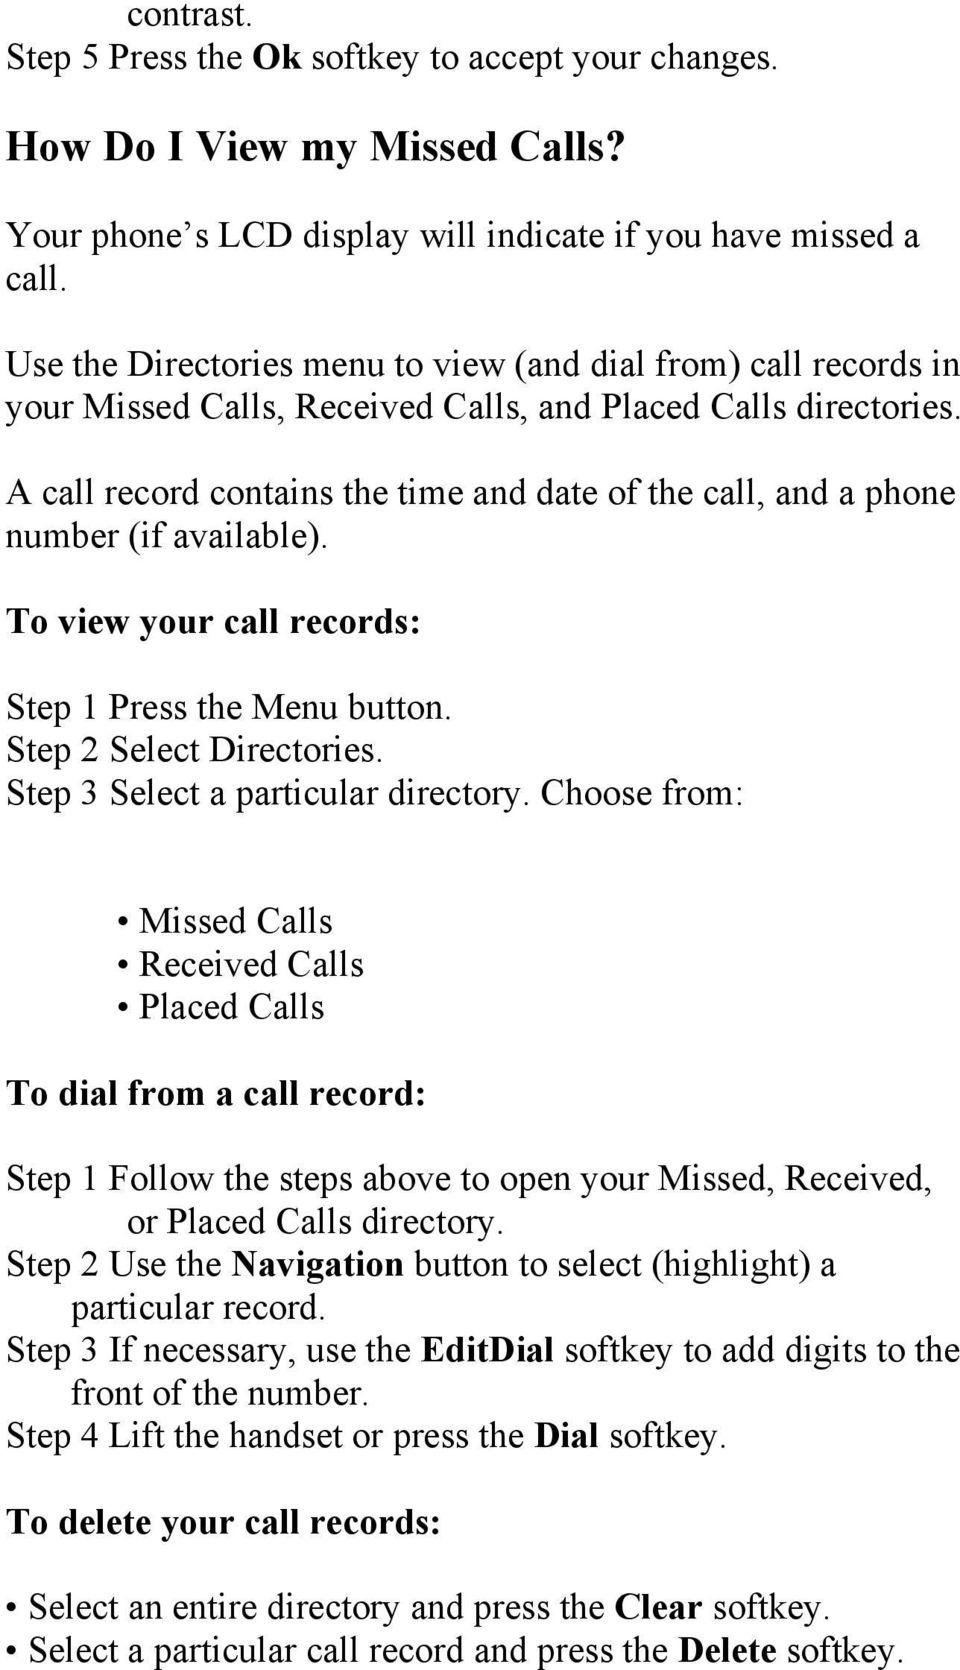 A call record contains the time and date of the call, and a phone number (if available). To view your call records: Step 1 Press the Menu button. Step 2 Select Directories.